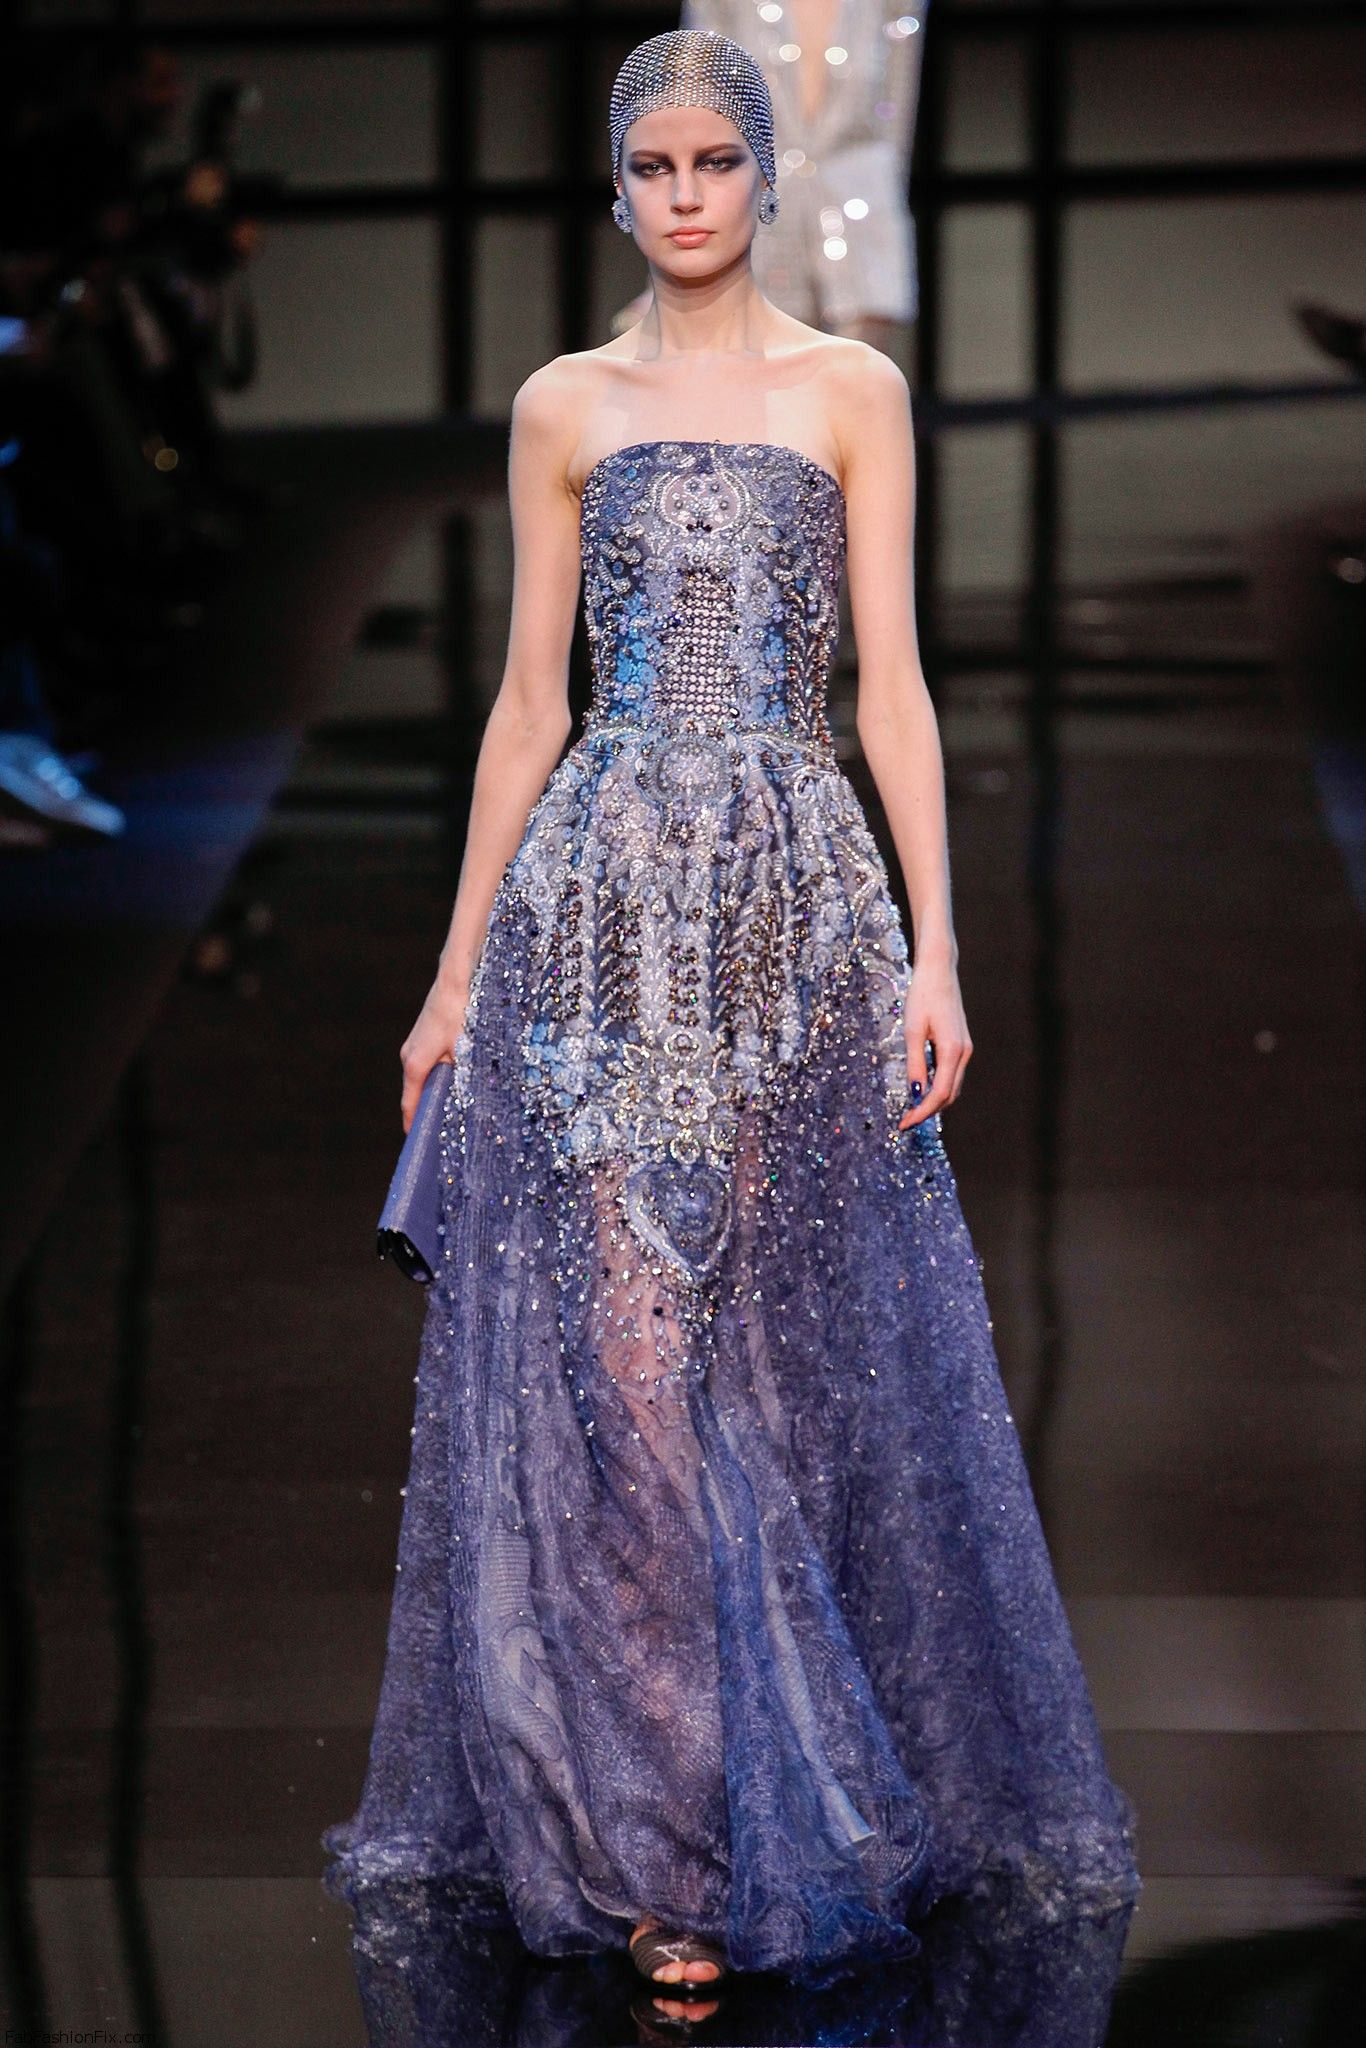 Armani priv haute couture spring 2014 collection fab for 2014 haute couture